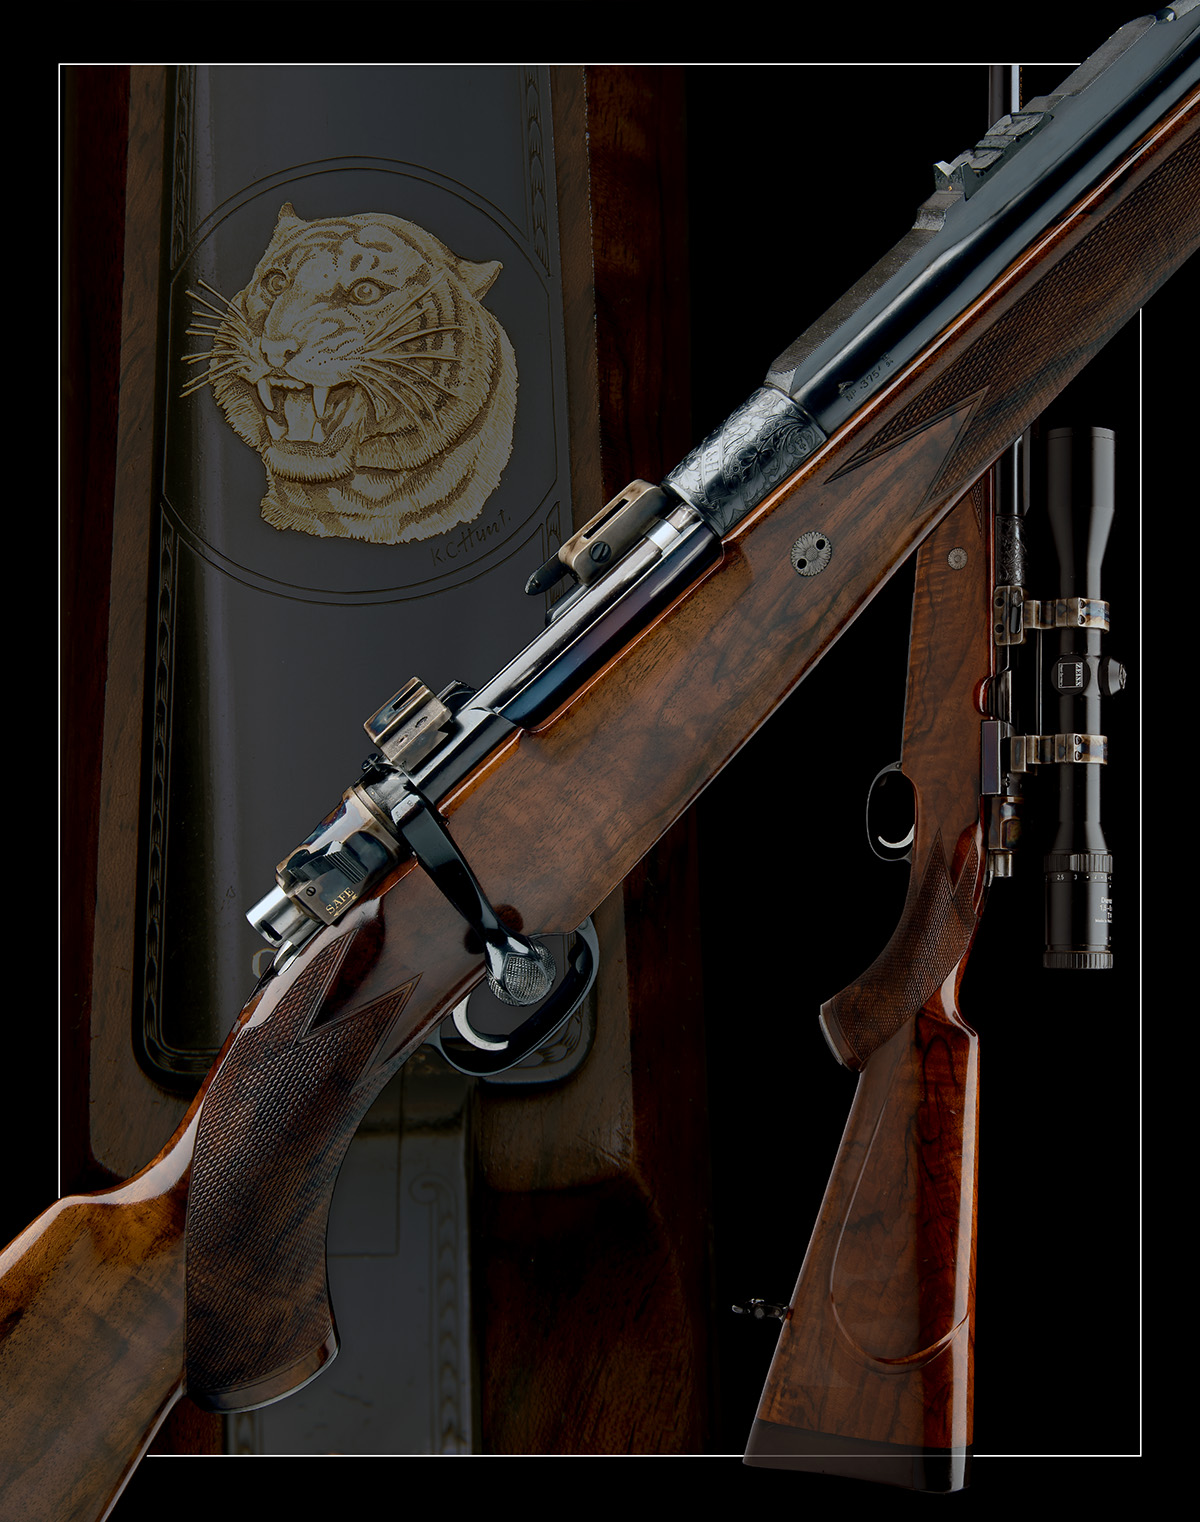 J. RIGBY & CO. A FINE, HUNT-ENGRAVED .375 H&H MAGNUM BOLT-MAGAZINE SPORTING RIFLE, serial no. - Image 12 of 12